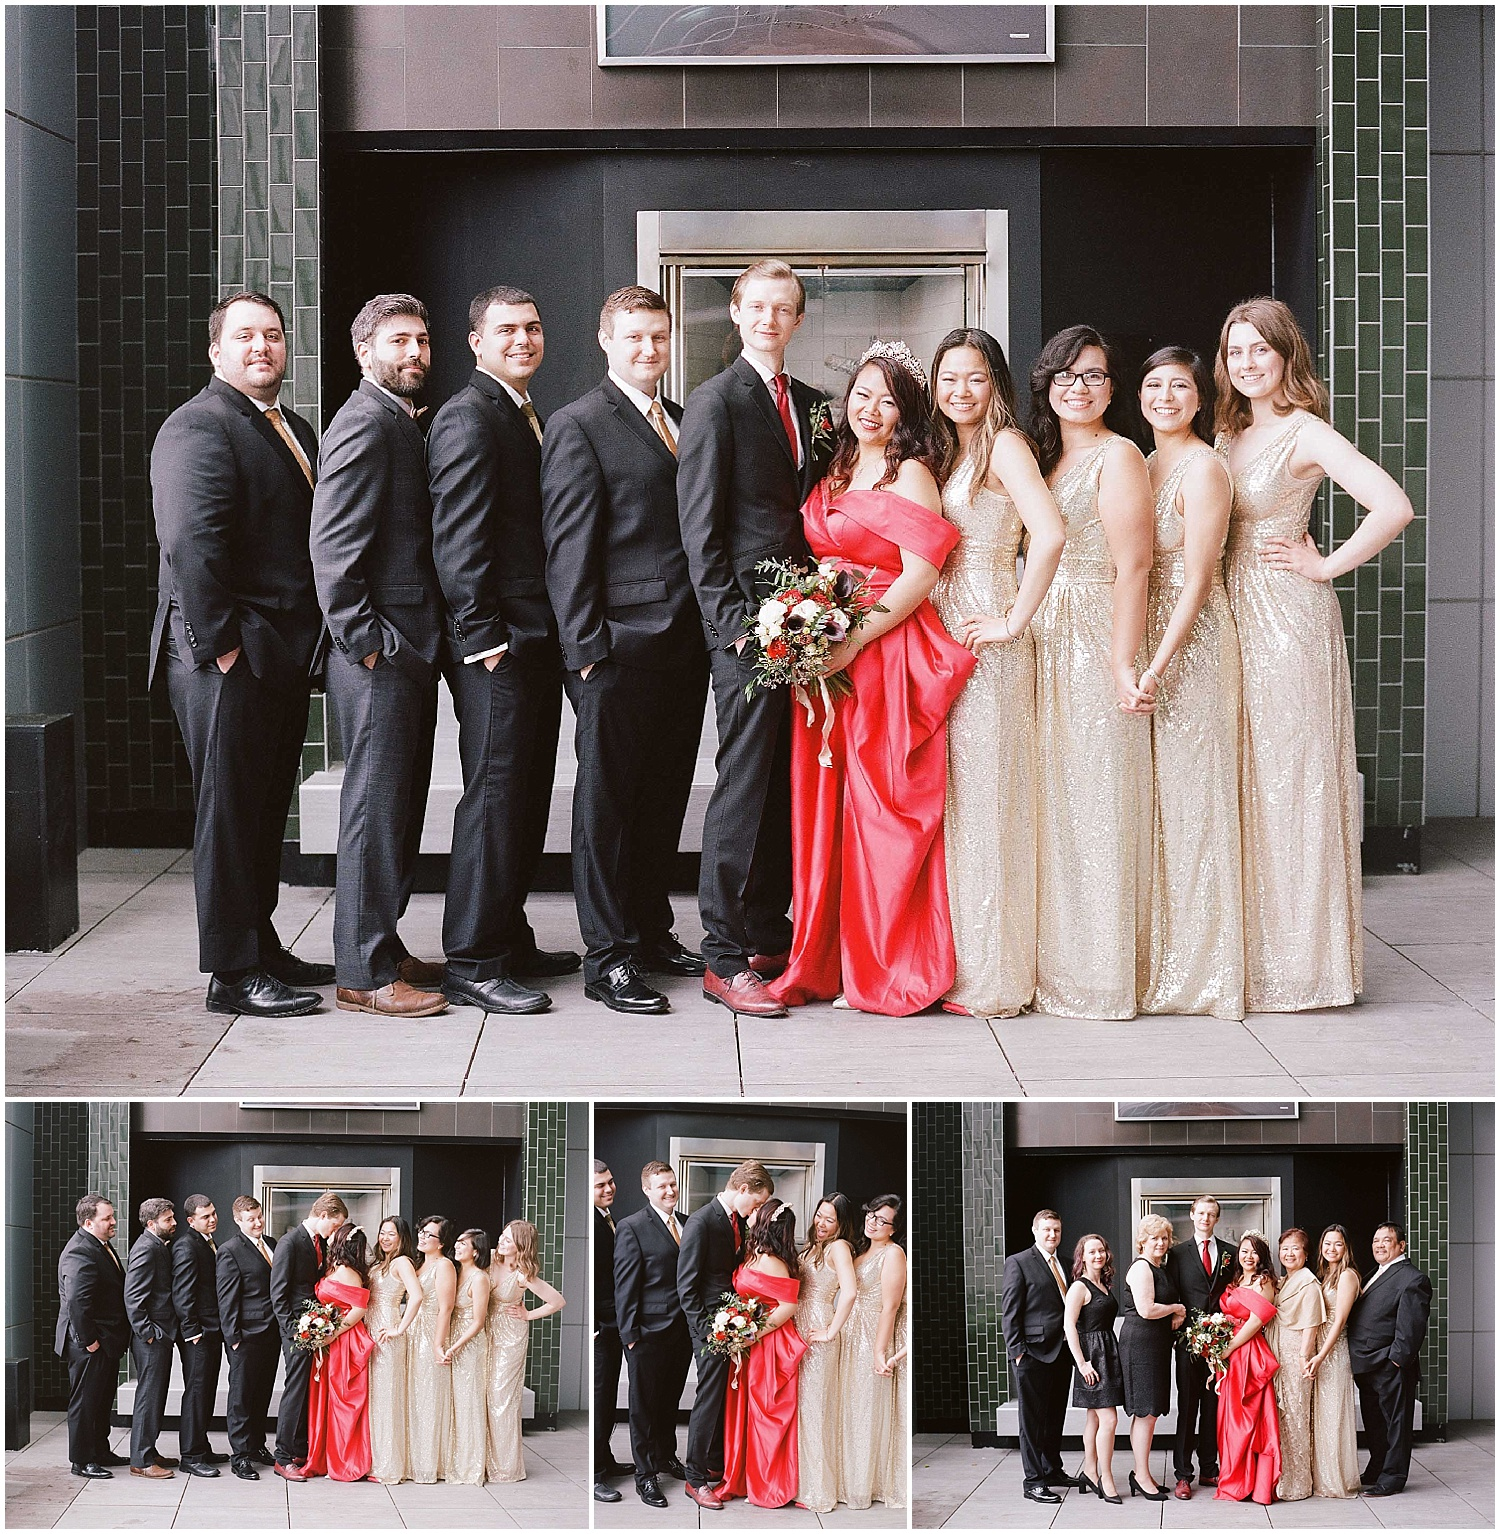 bridal party photos at an intimate wedding in hoboken new jersey at the W Hotel